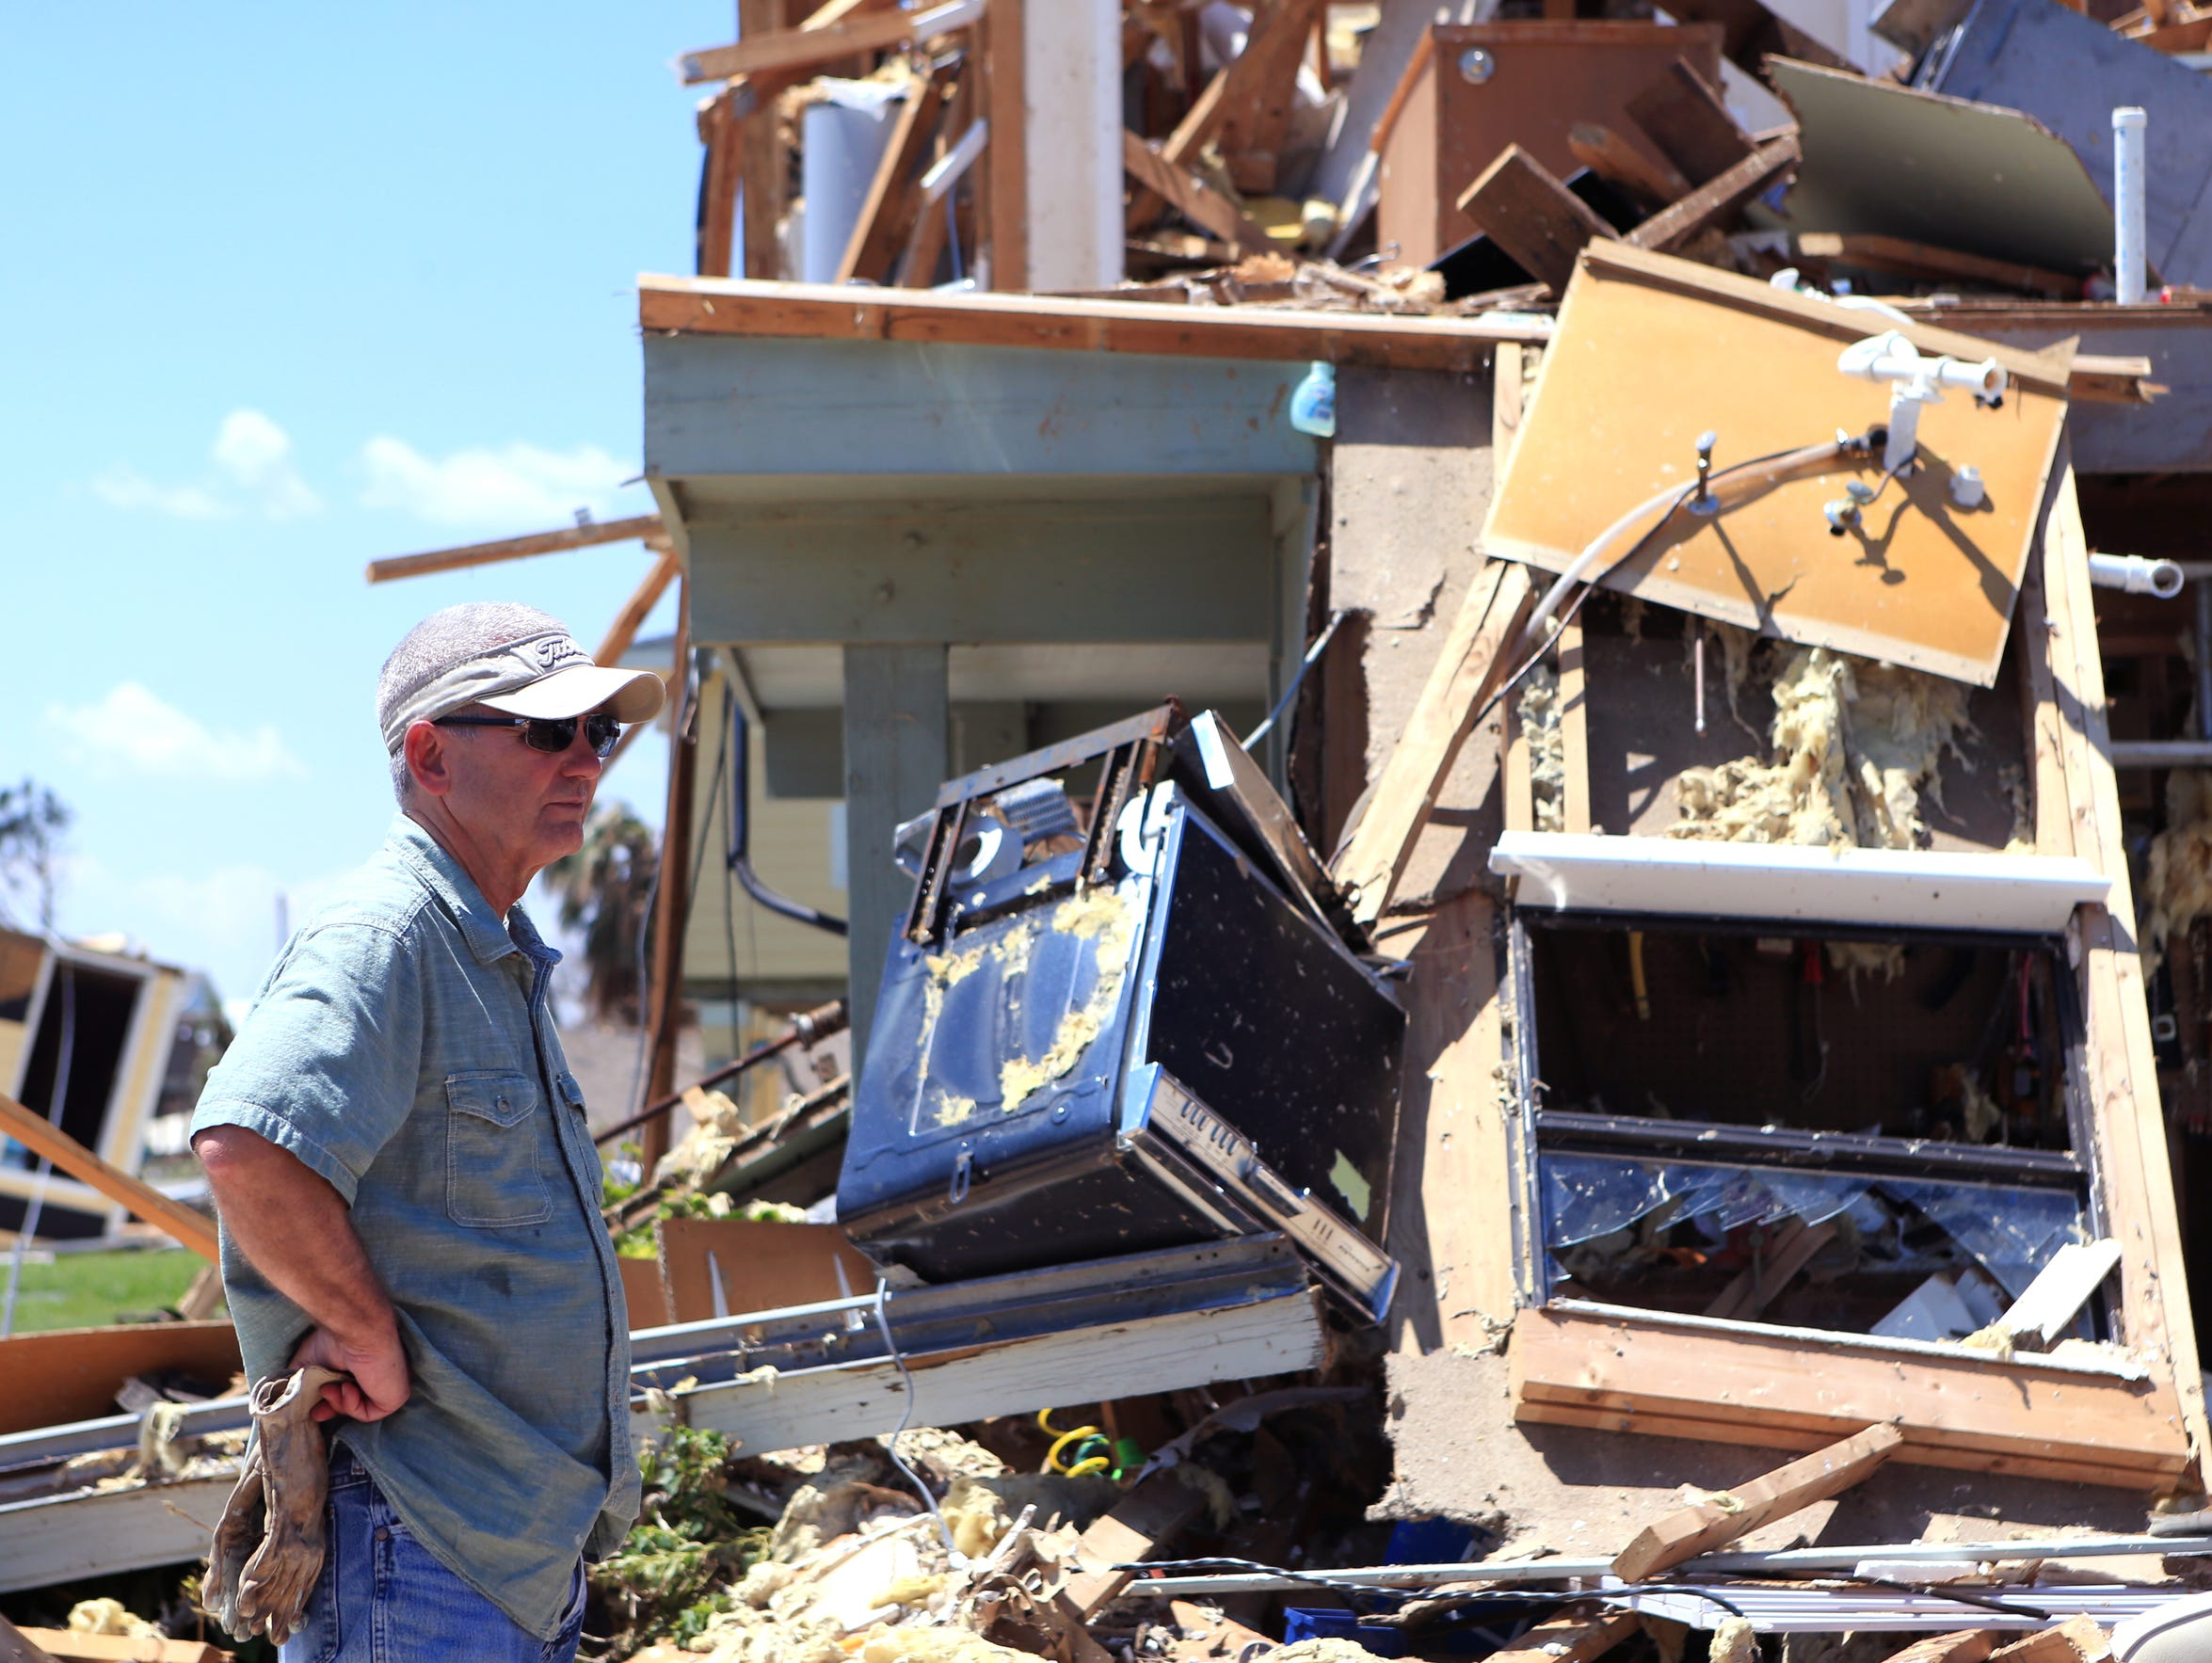 Kim Weatherford surveys the damage at his vacation